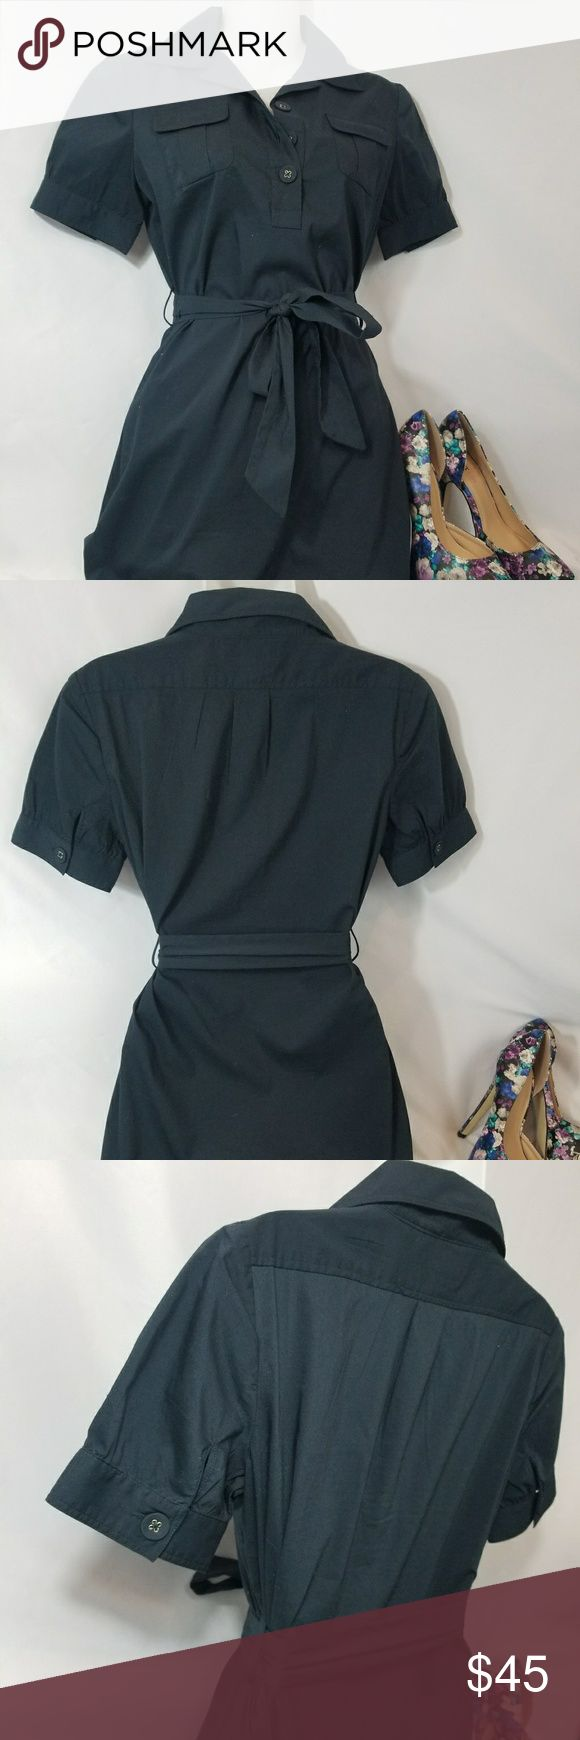 """Navy Banana Republic Petites Dress Size 0 Navy Banana Republic Petites Dress Size 0. Ties around the waist and buttons down the front. Like new, no flaws. Shoes not included but they are for sale in my closet.   Chest 17.5"""" Length from top of shoulder to hem line 33"""" Banana Republic Dresses Midi"""